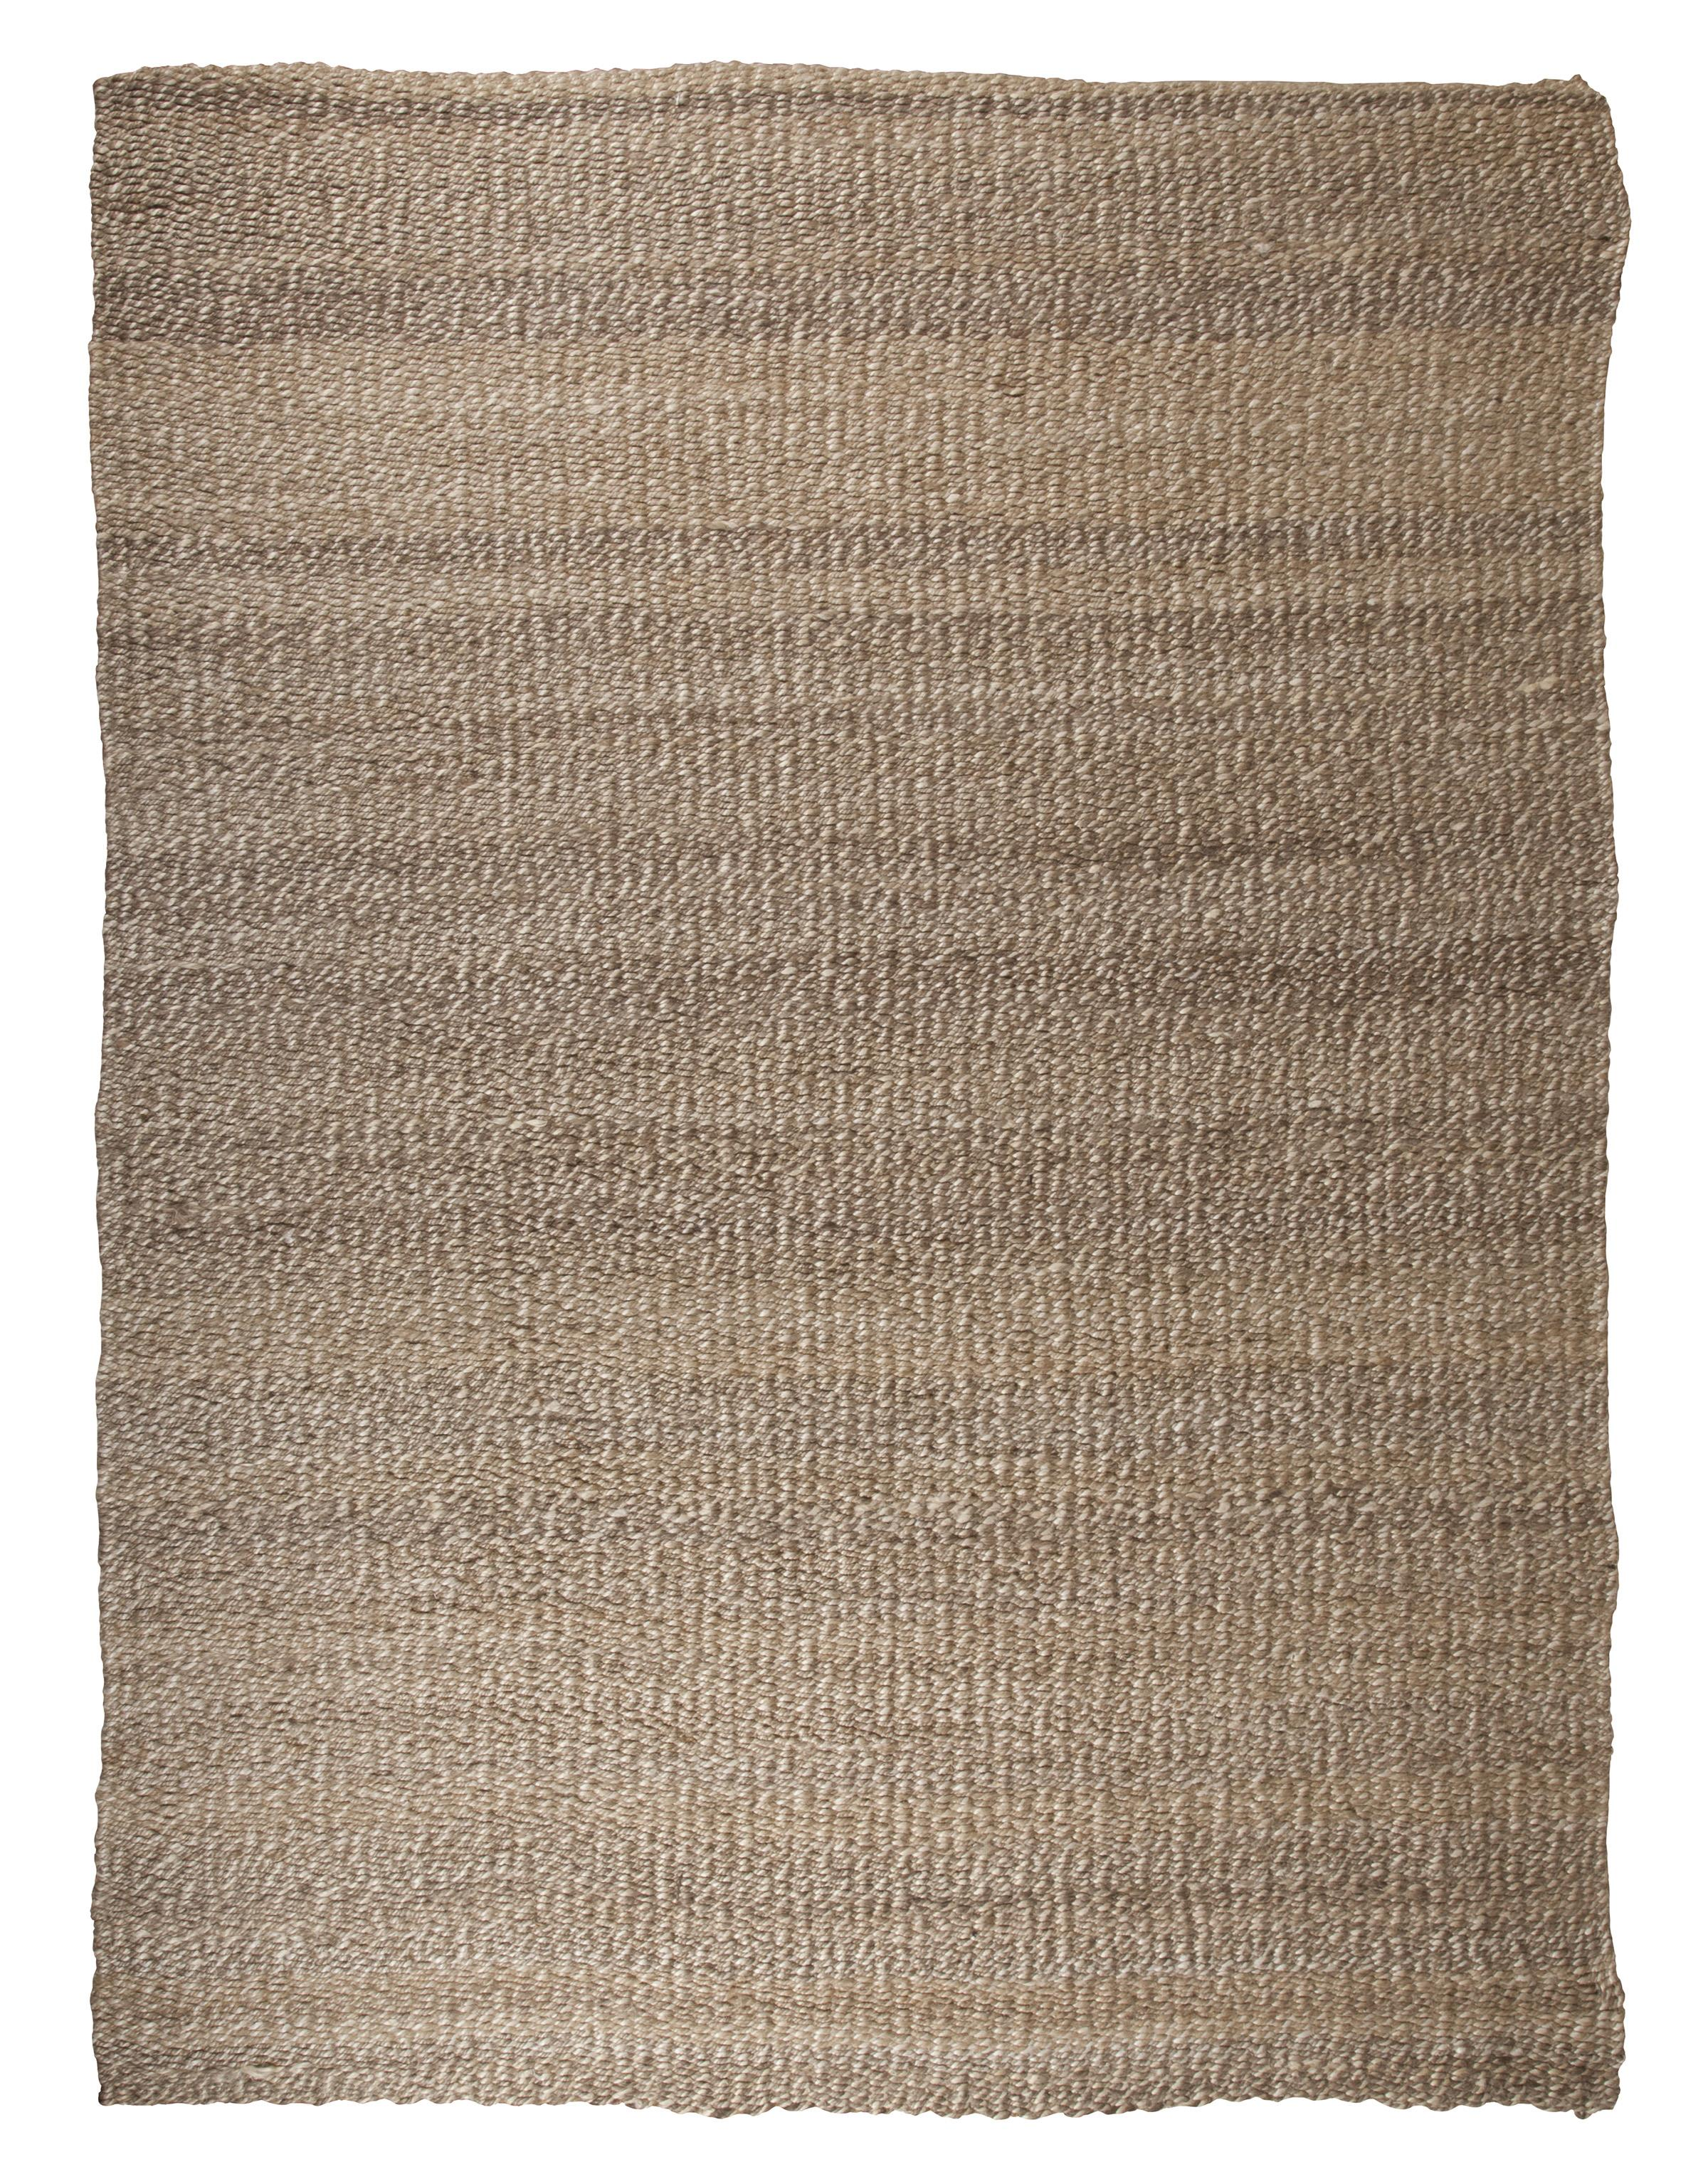 Signature Design by Ashley Contemporary Area Rugs Textured - Tan/White Large Rug - Item Number: R401501